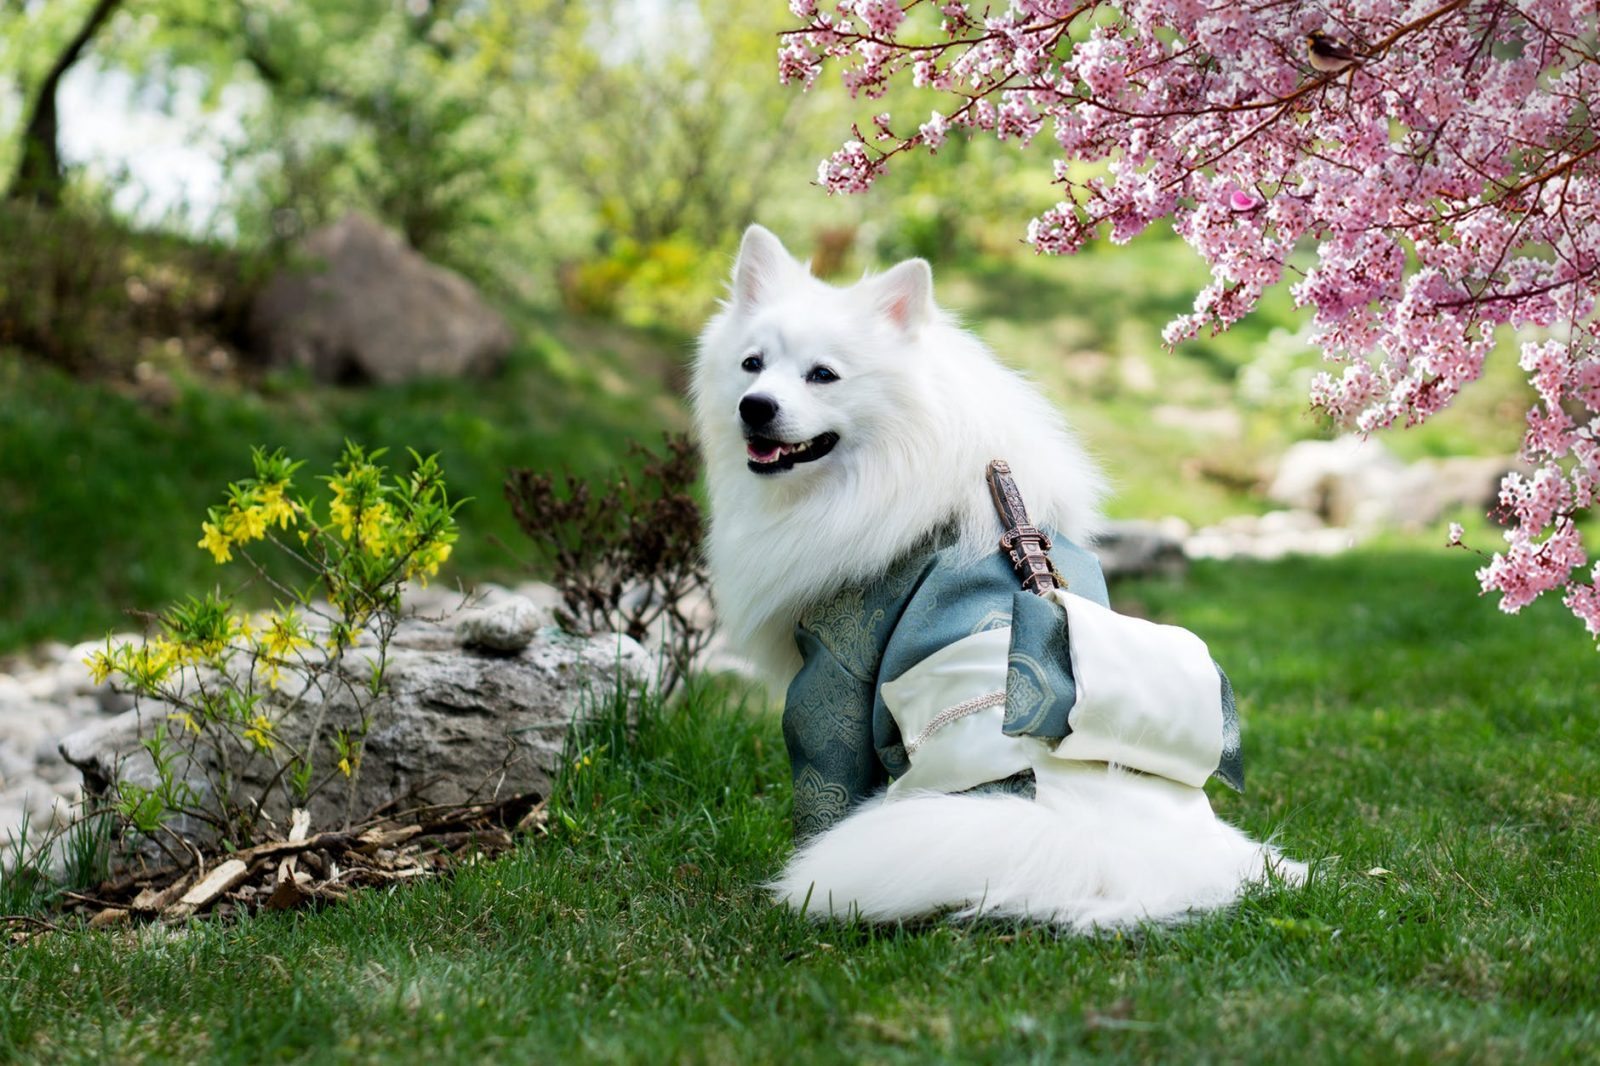 White dog wearing a Japanese costume in the garden